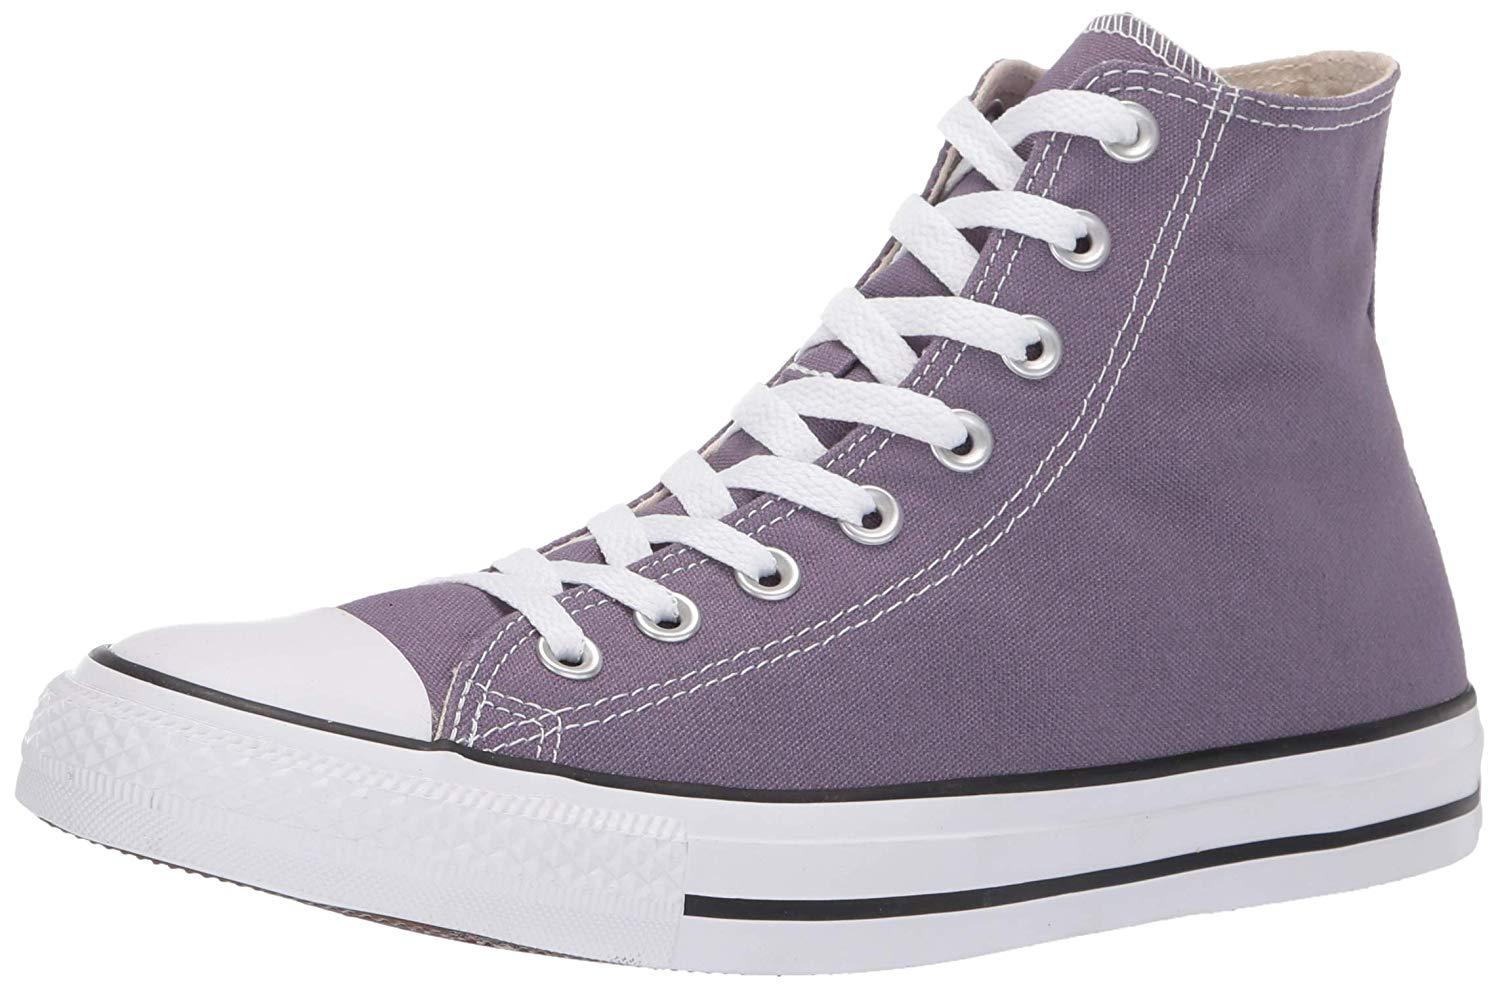 06867df1614d7 Converse - Unisex Adult Chuck Taylor All Star Fashion Hi Top Sneakers